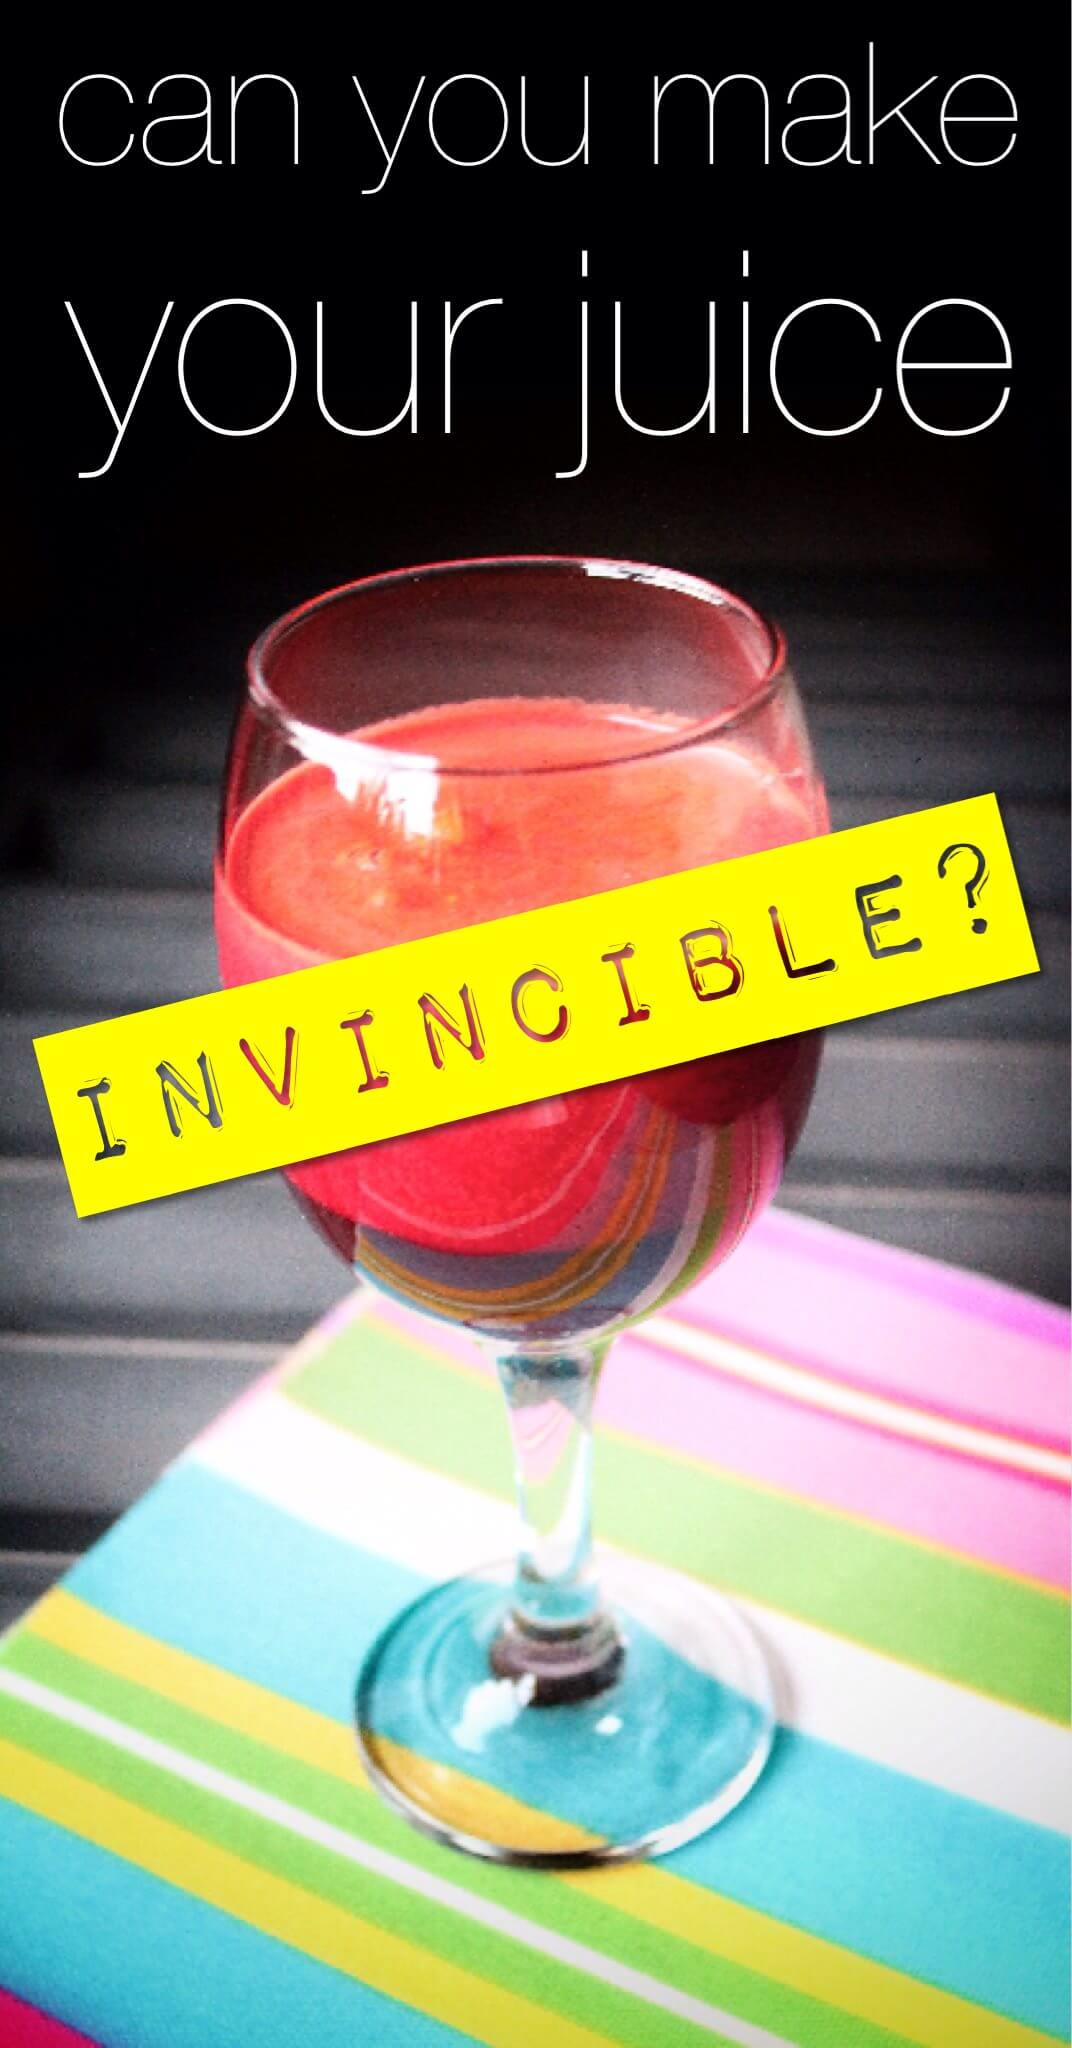 Make Your Juice Invincible - www.ohlardy.com